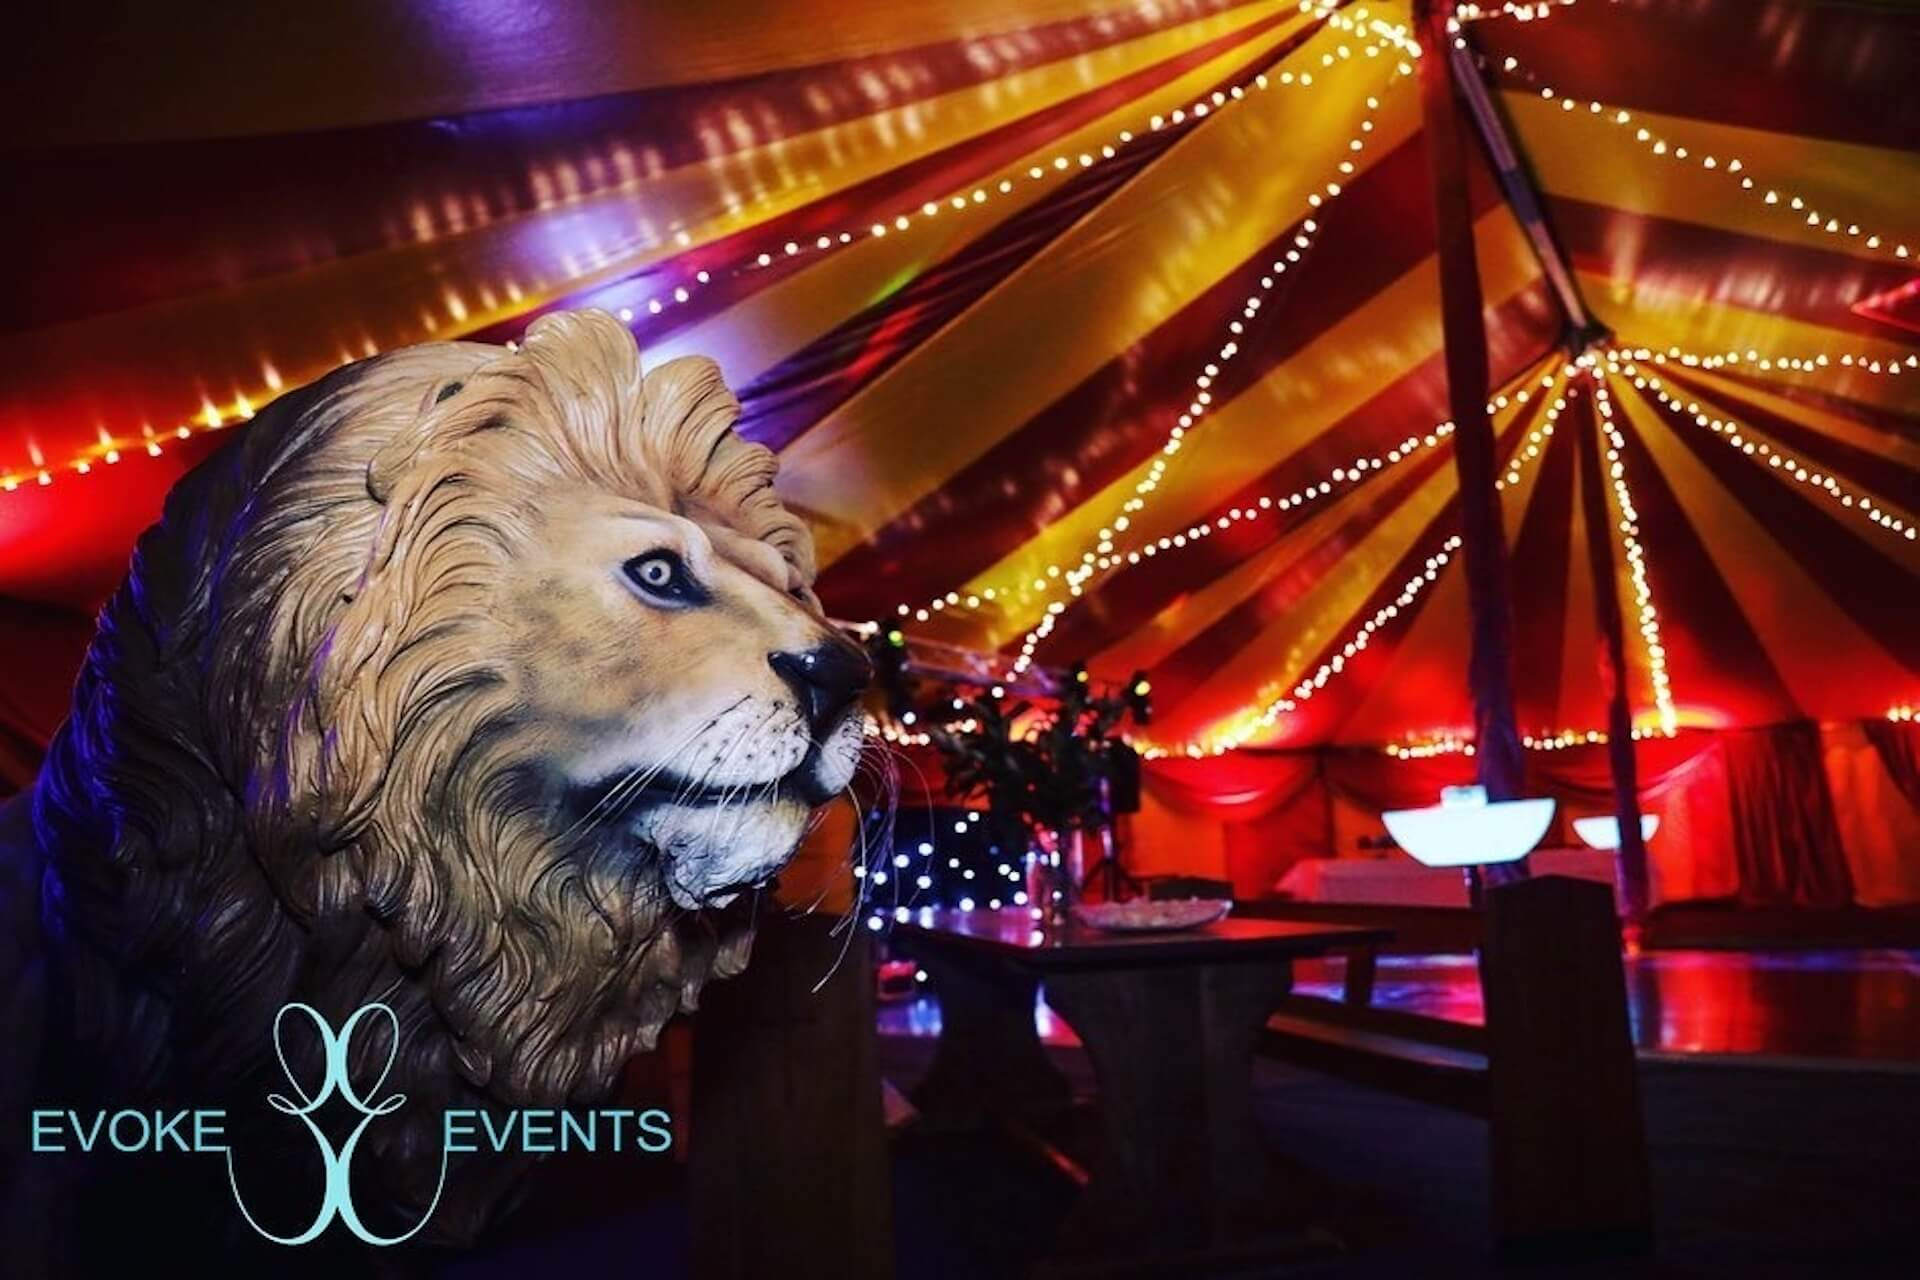 Circus lion prop by evoke events